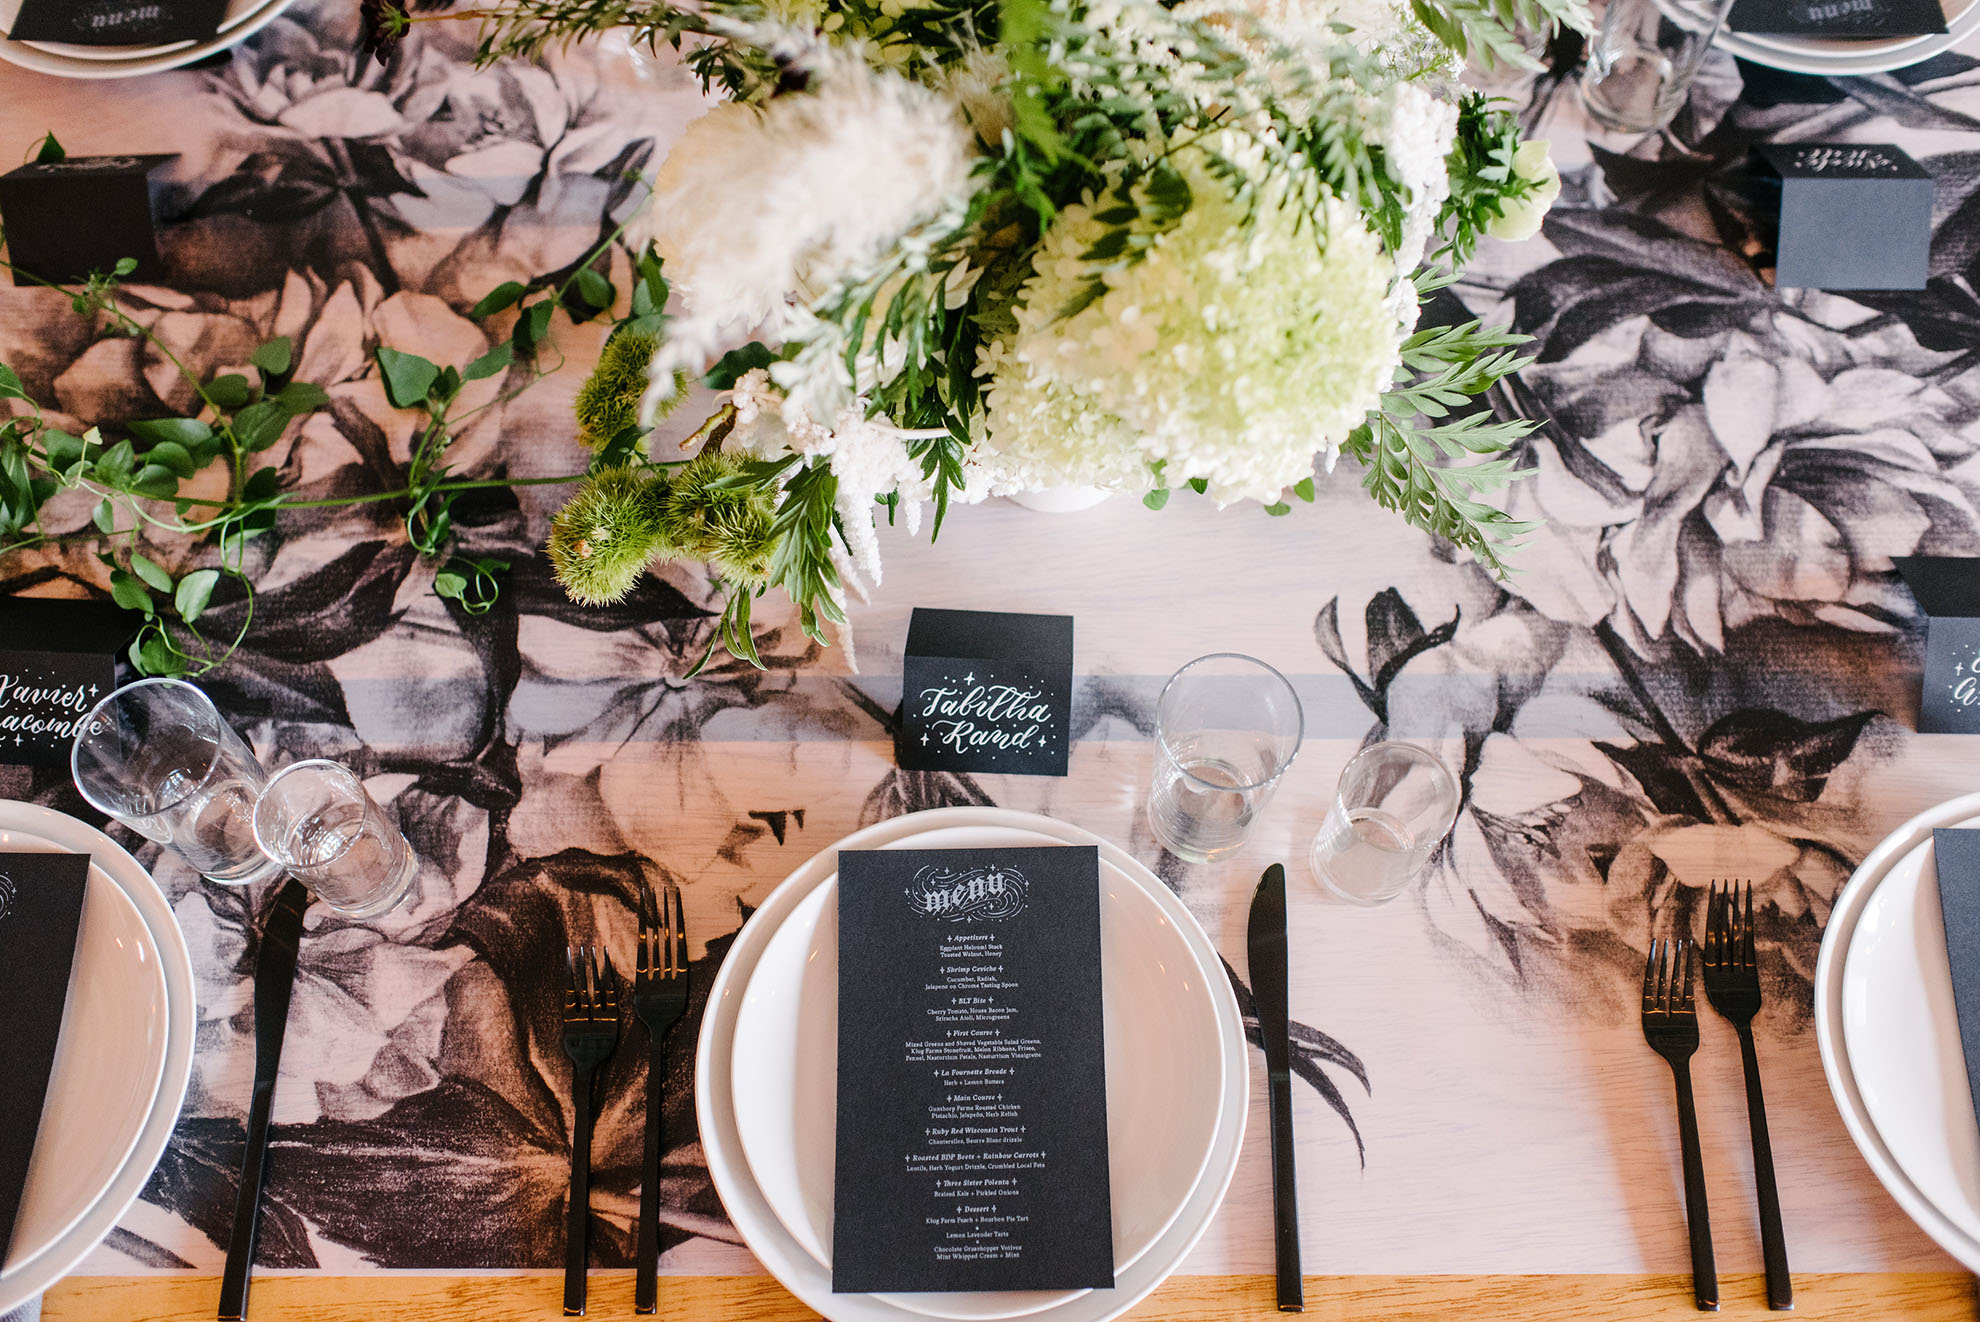 a place setting with flowers